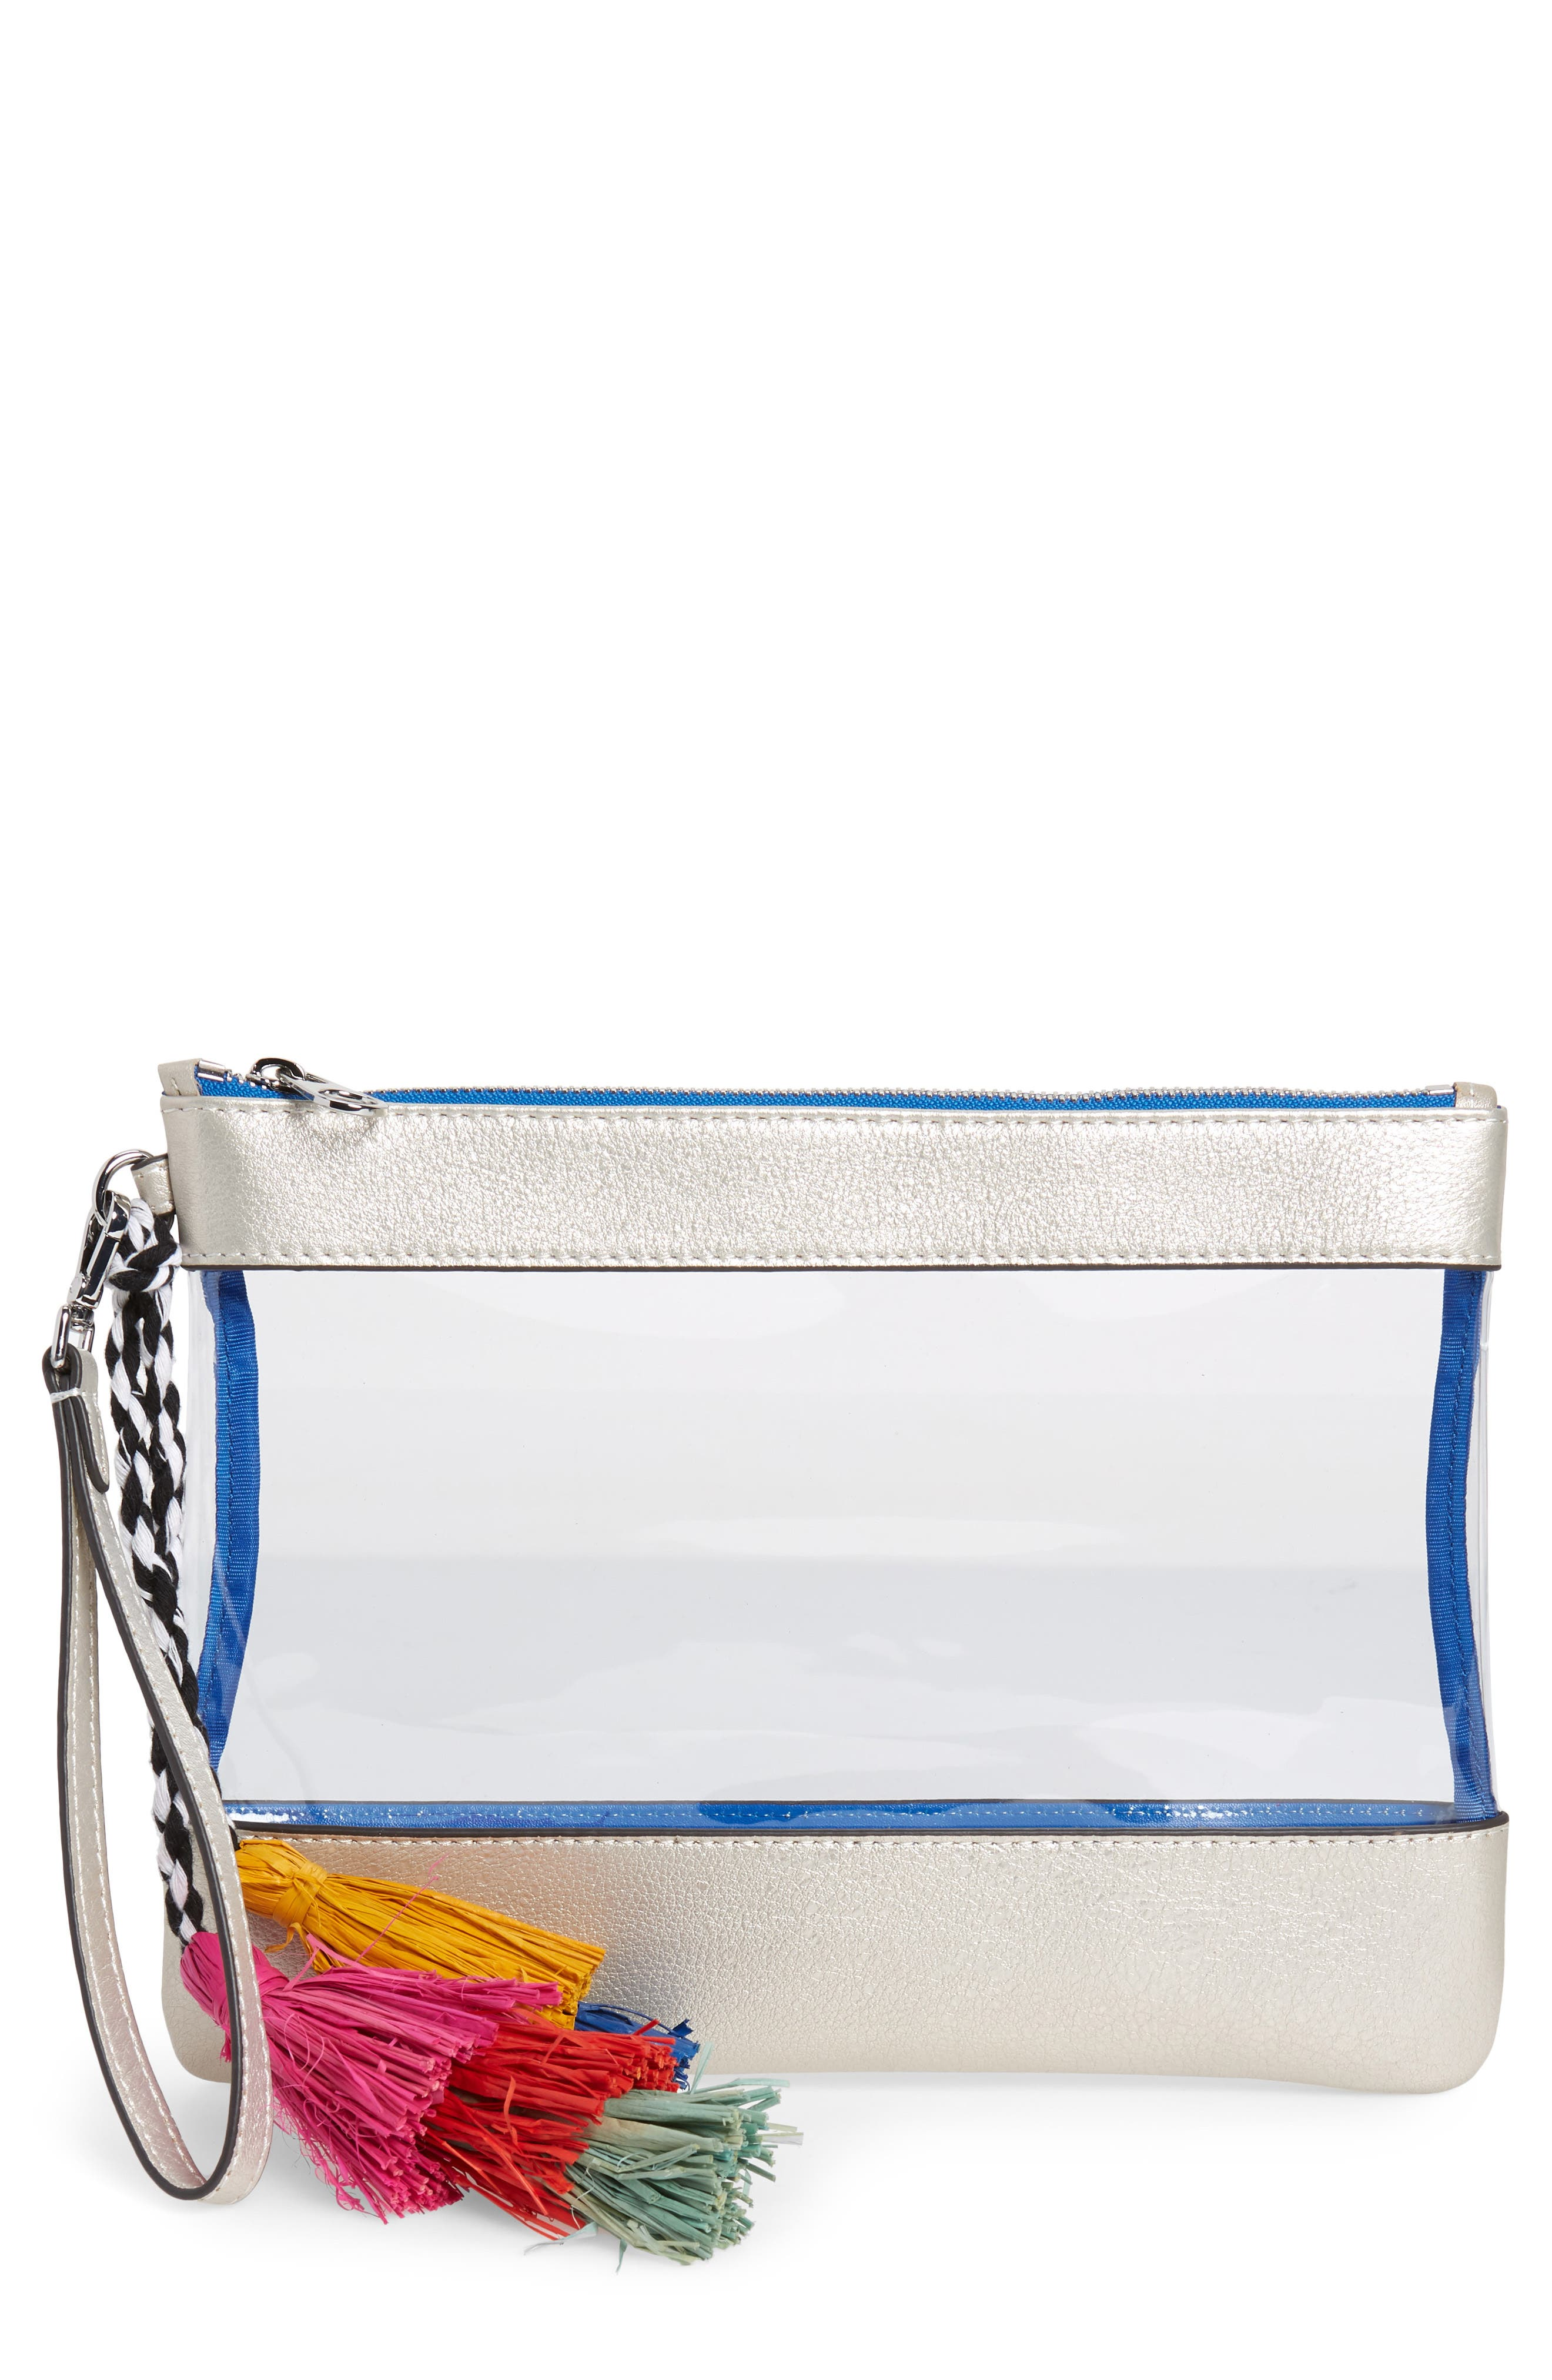 Thore Clear Tassel Wristlet Clutch,                         Main,                         color,